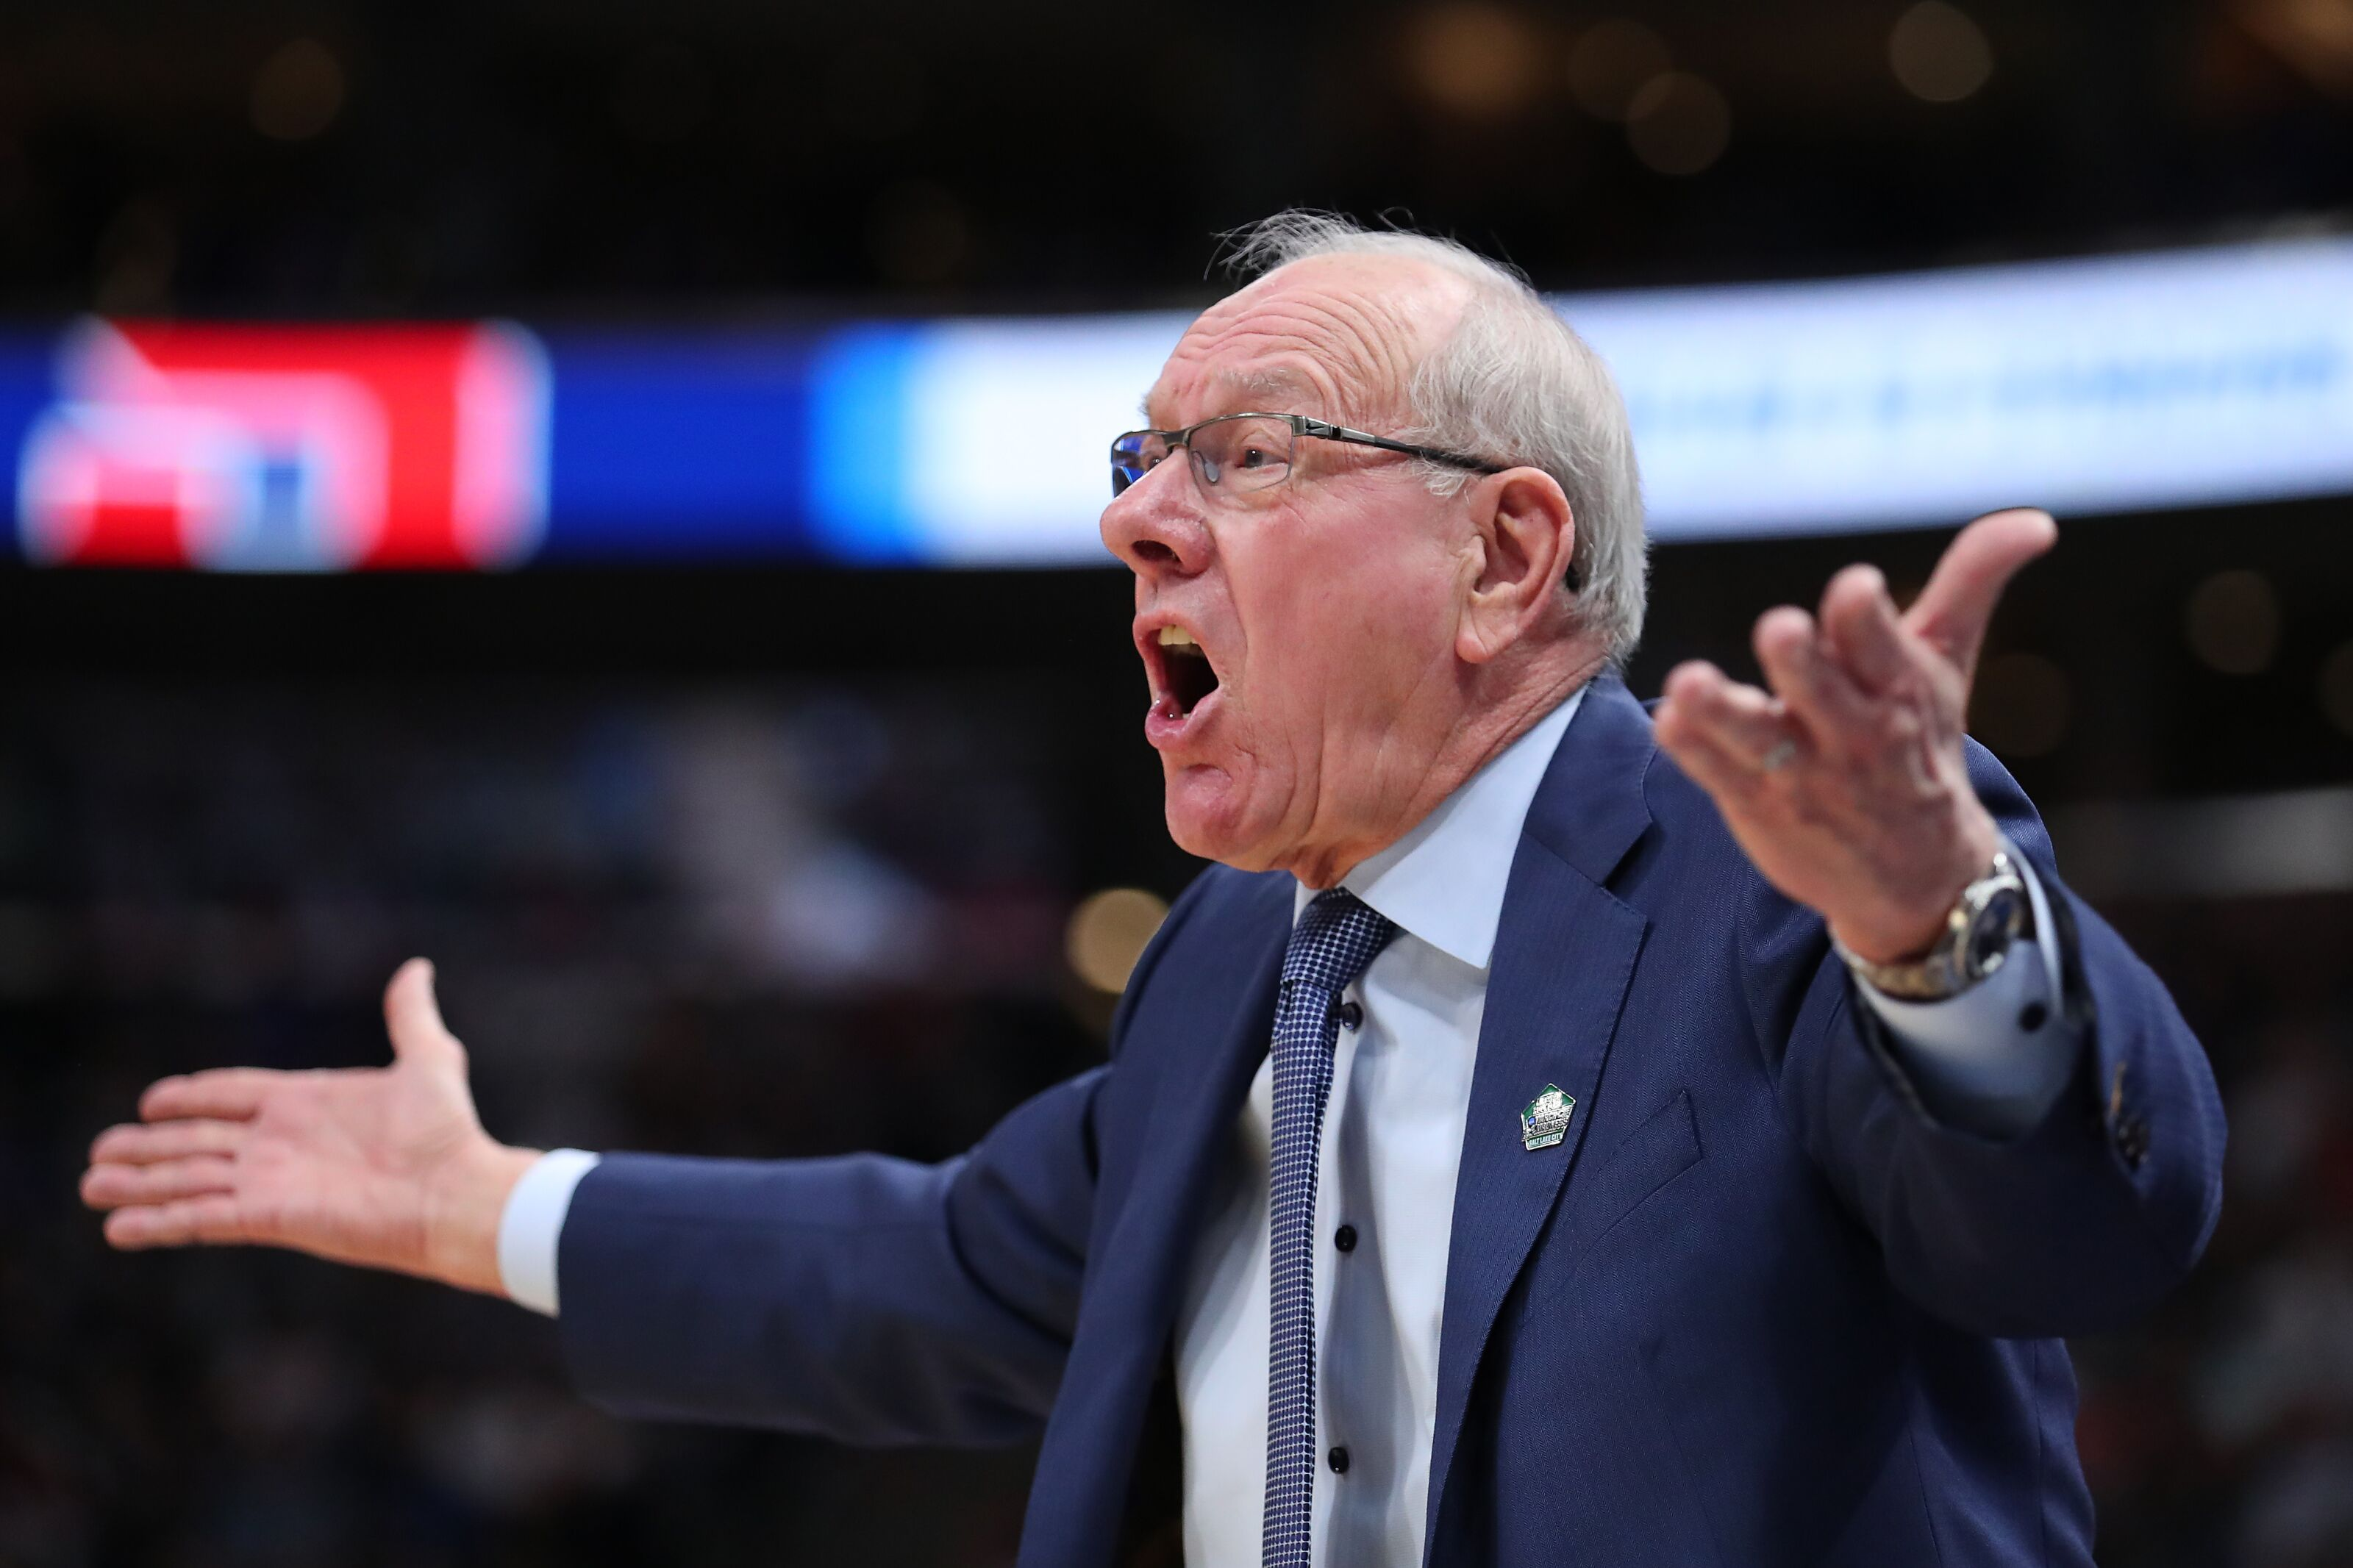 Syracuse Basketball: SU season ends vs Baylor in NCAA Tournament